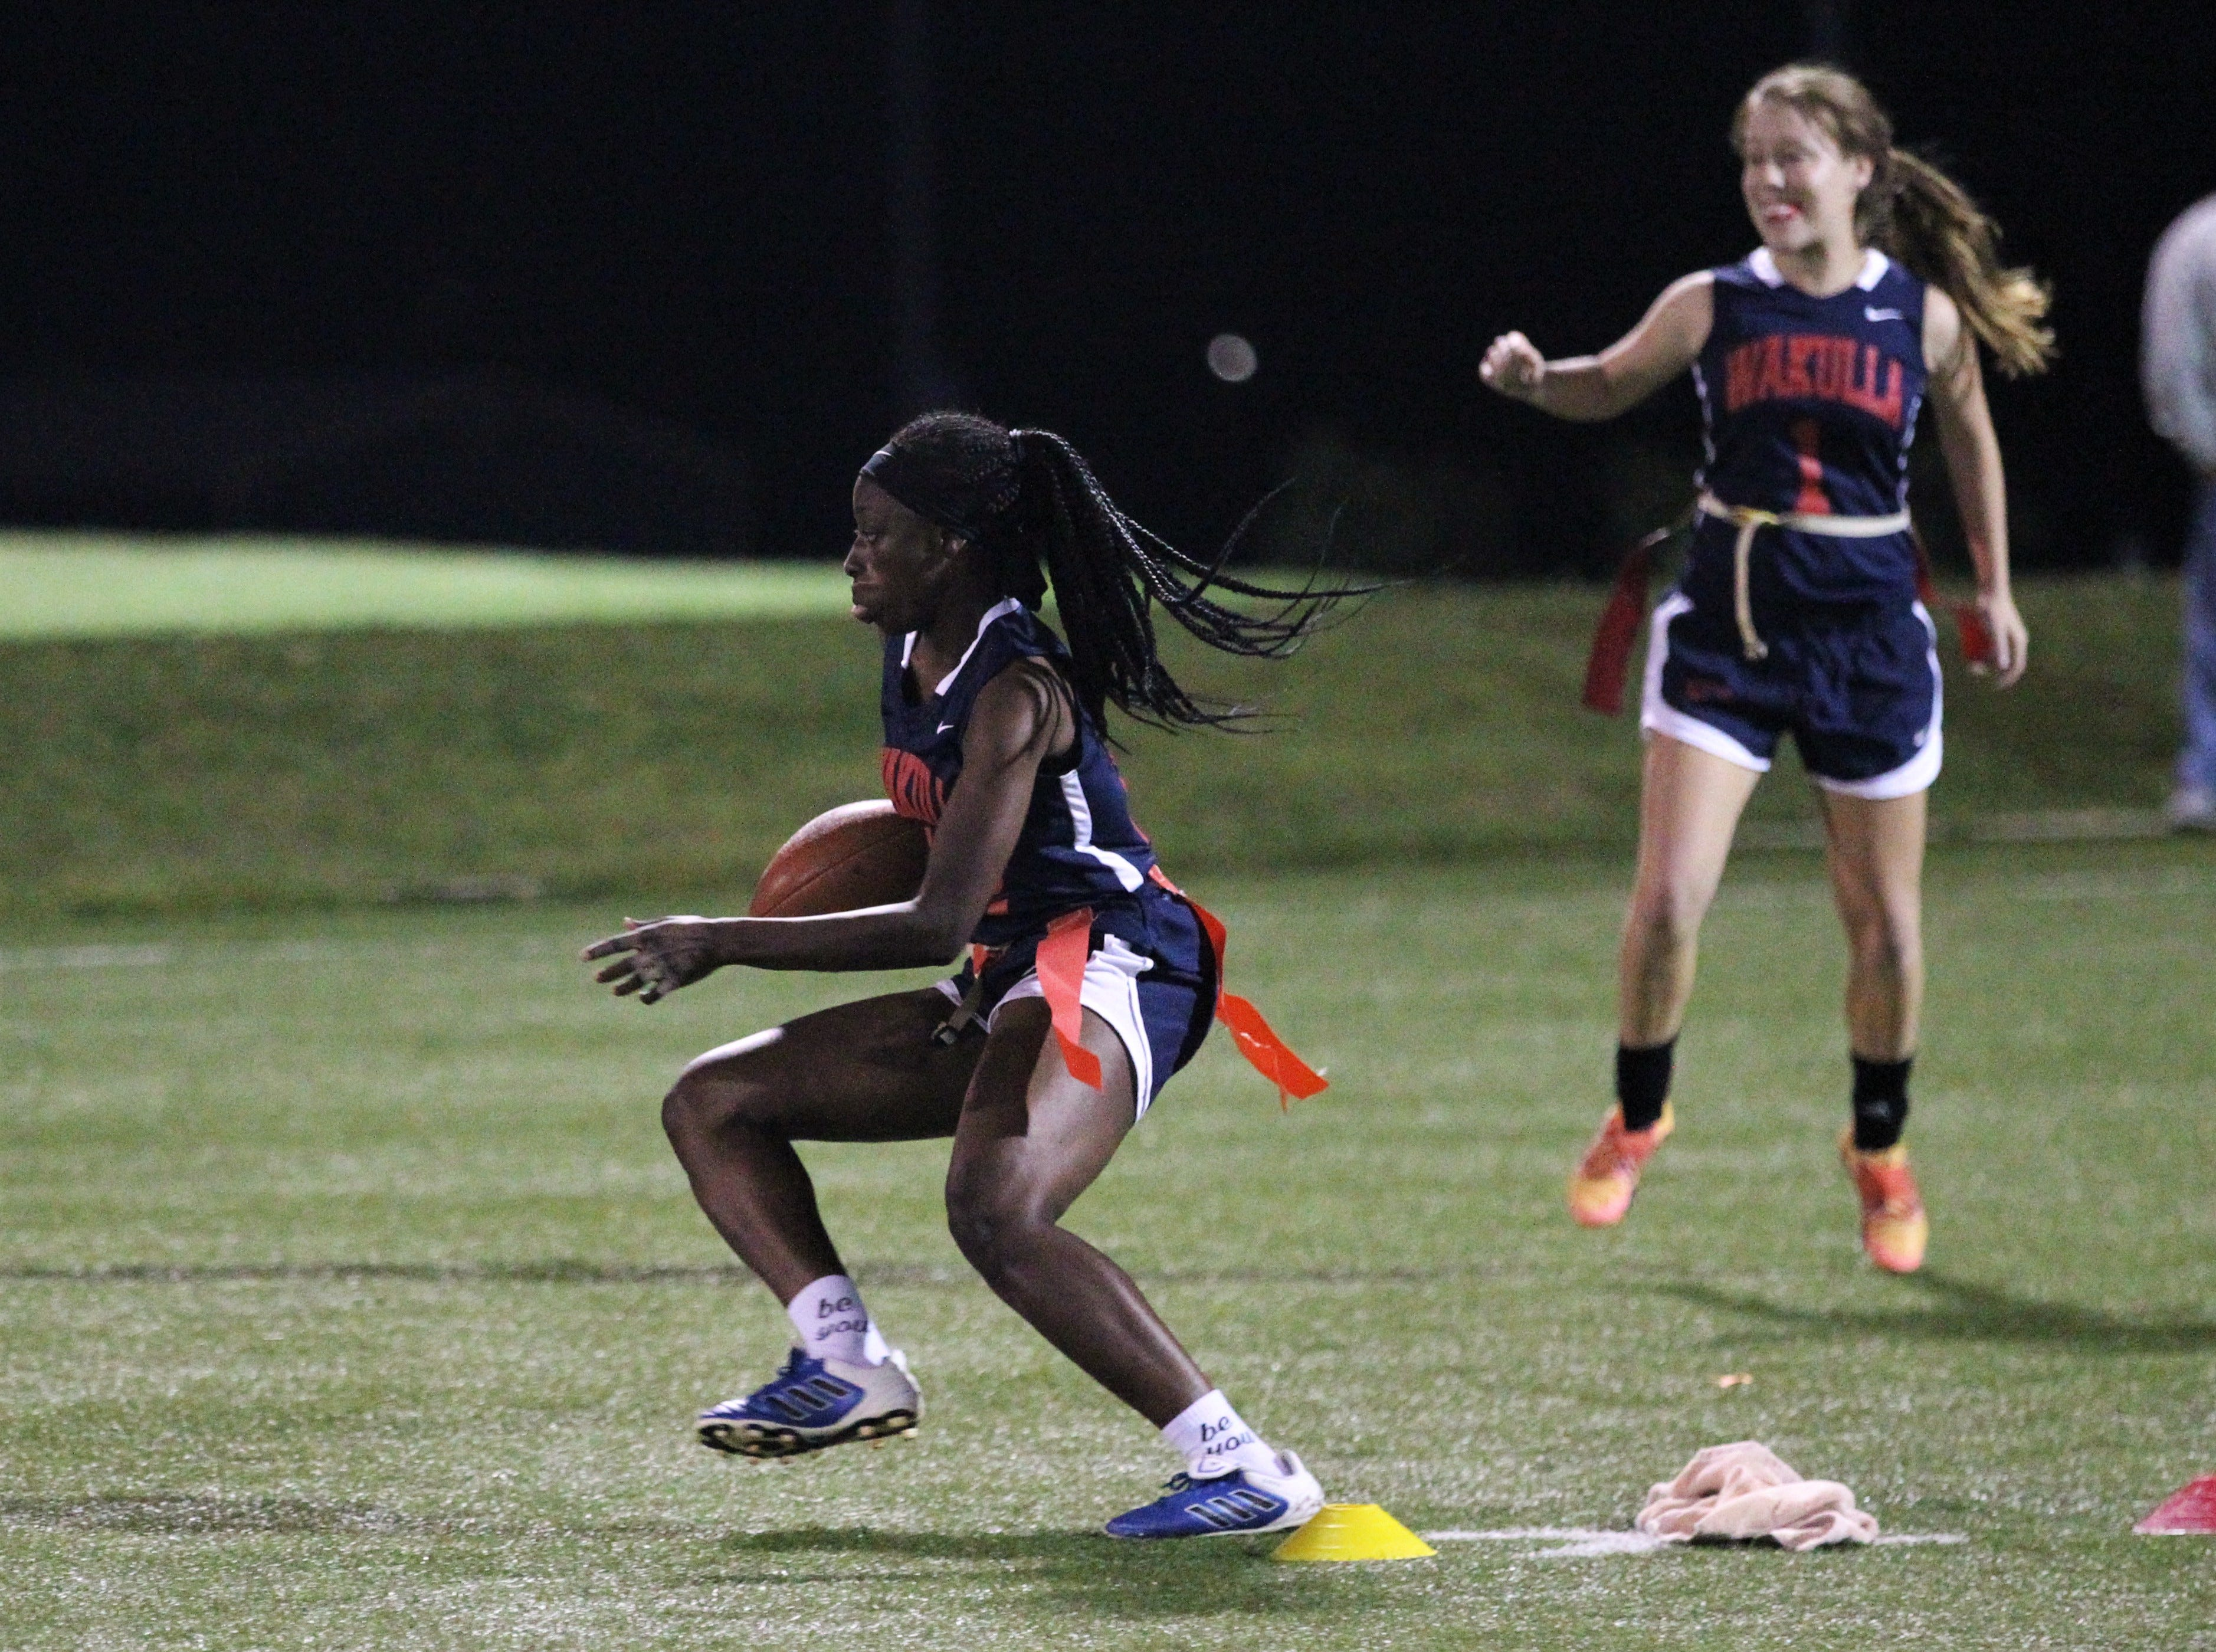 Wakulla running back Ja'daa Wilson runs for a gain as the War Eagles and Gadsden County play during the 2019 flag football preseason classic at Florida A&M's intramural turf fields on Feb. 27, 2019.